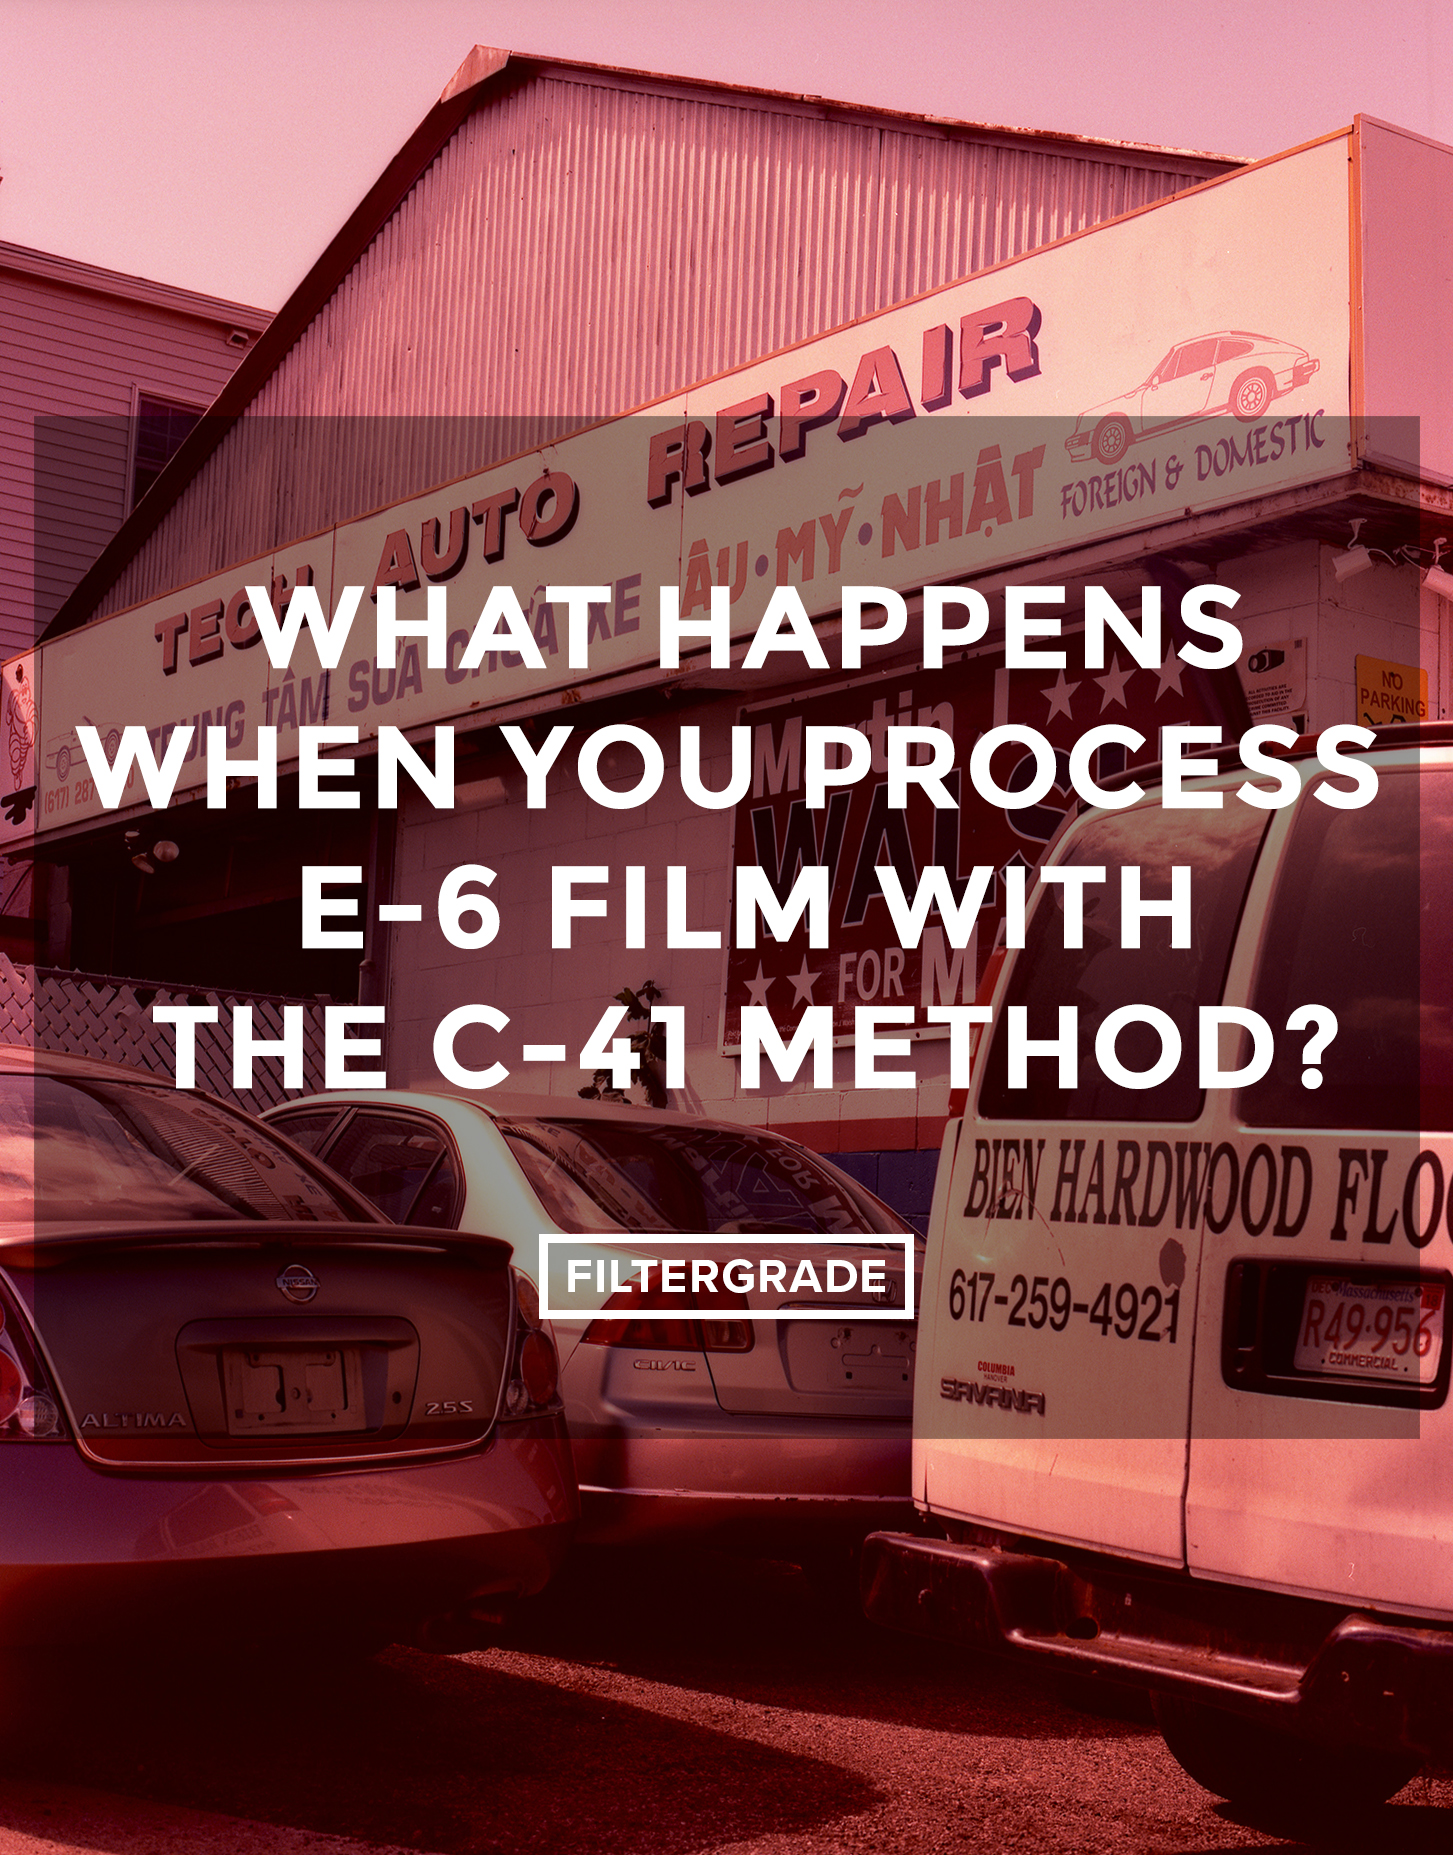 What Happens When You Process E-6 Film With the C-41 Method? - FilterGrade